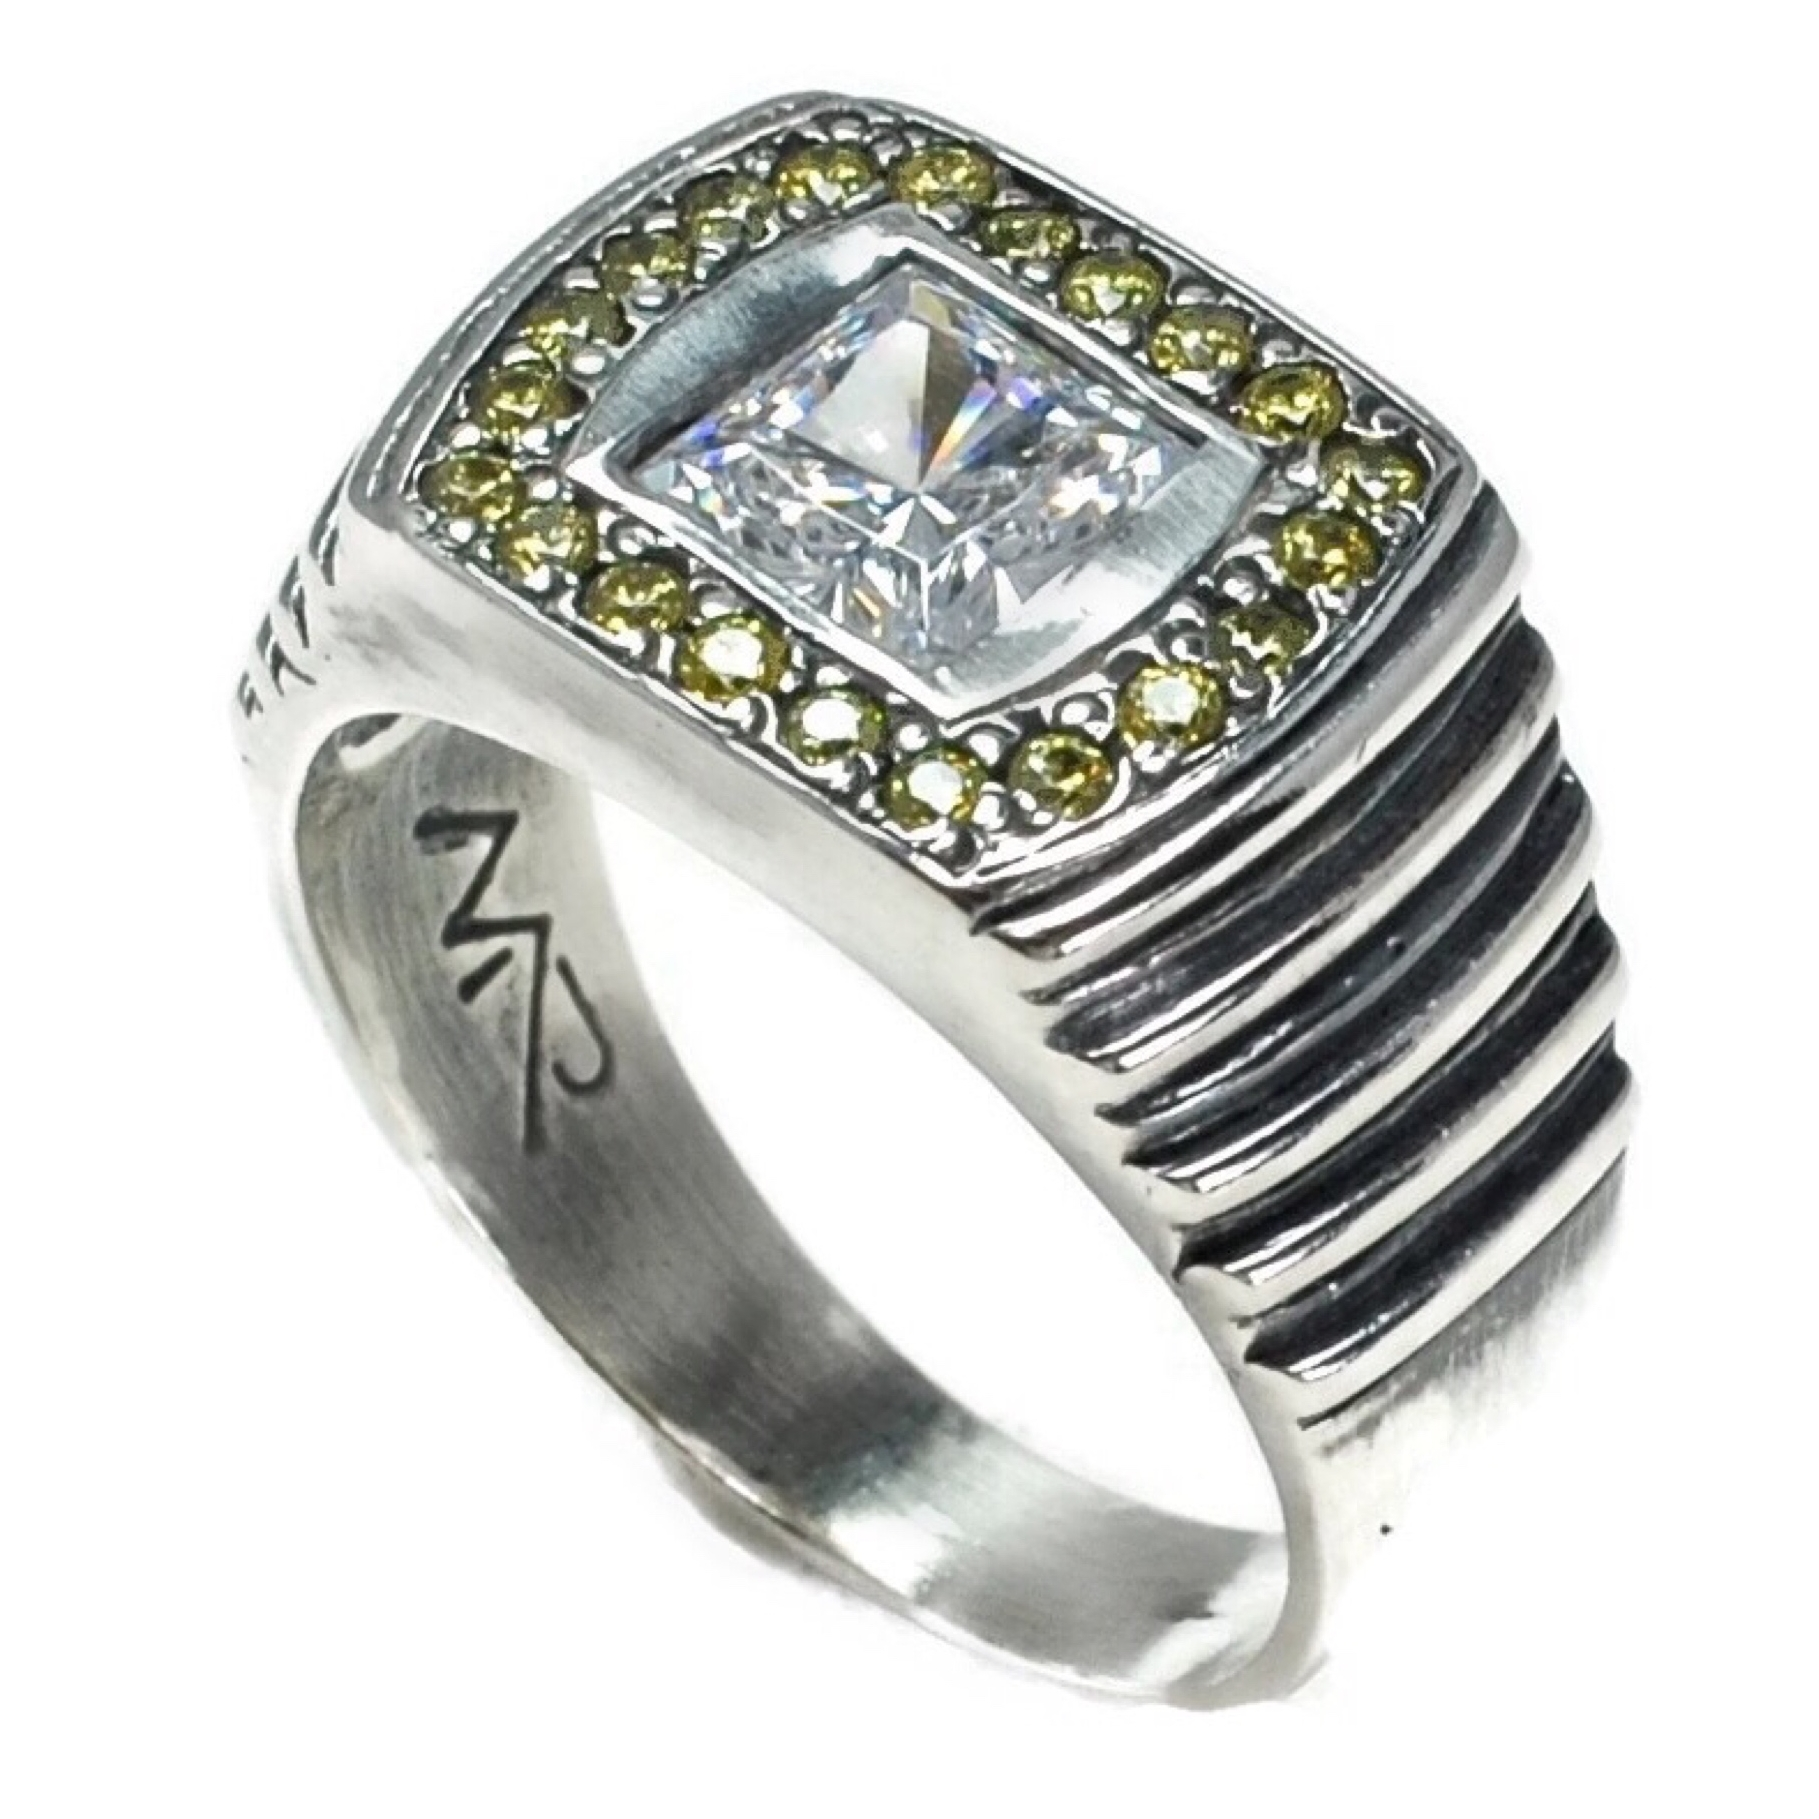 Citine and Emerald Cut Crystal Step Side RIng 12.JPG